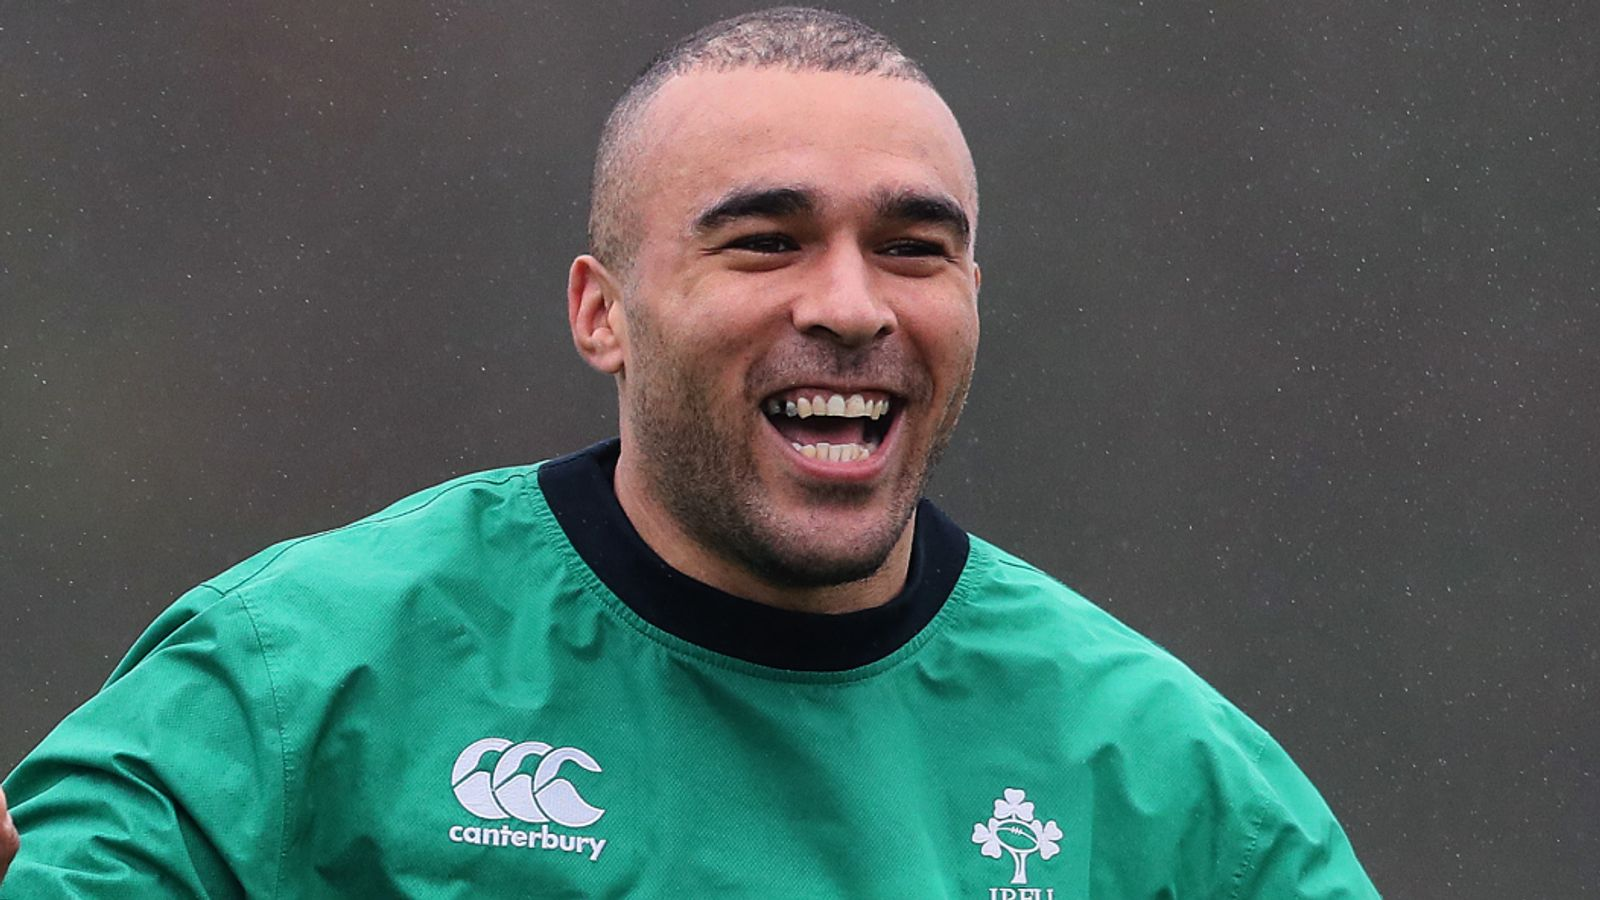 Simon Zebo returns to Ireland squad for Autumn Nations Series after four-year absence